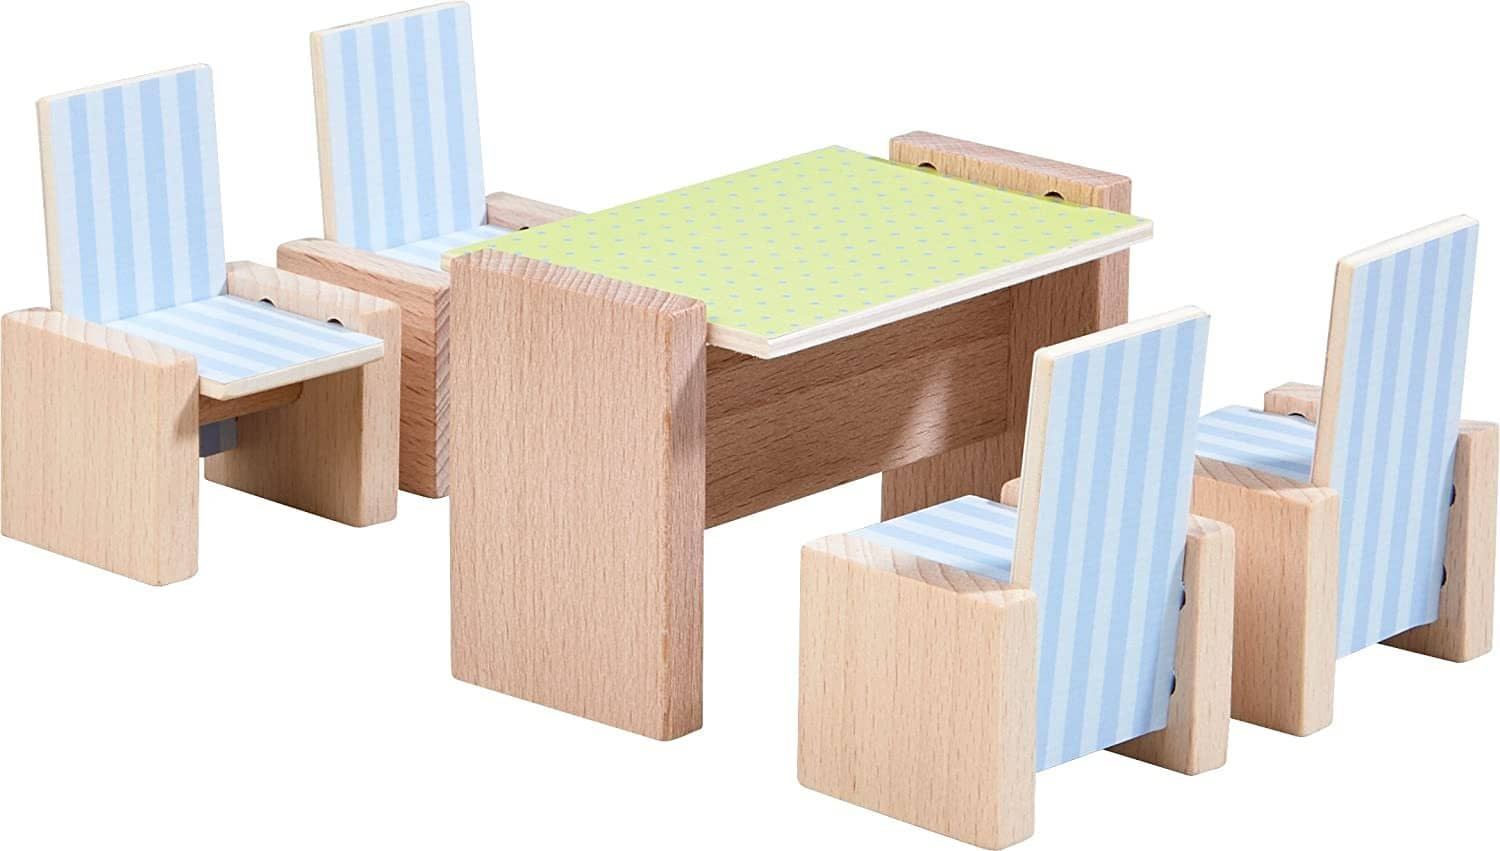 "Little Friends Dining Room - Wooden Dollhouse Furniture For 4"" Bendy Dolls-Kidding Around NYC"